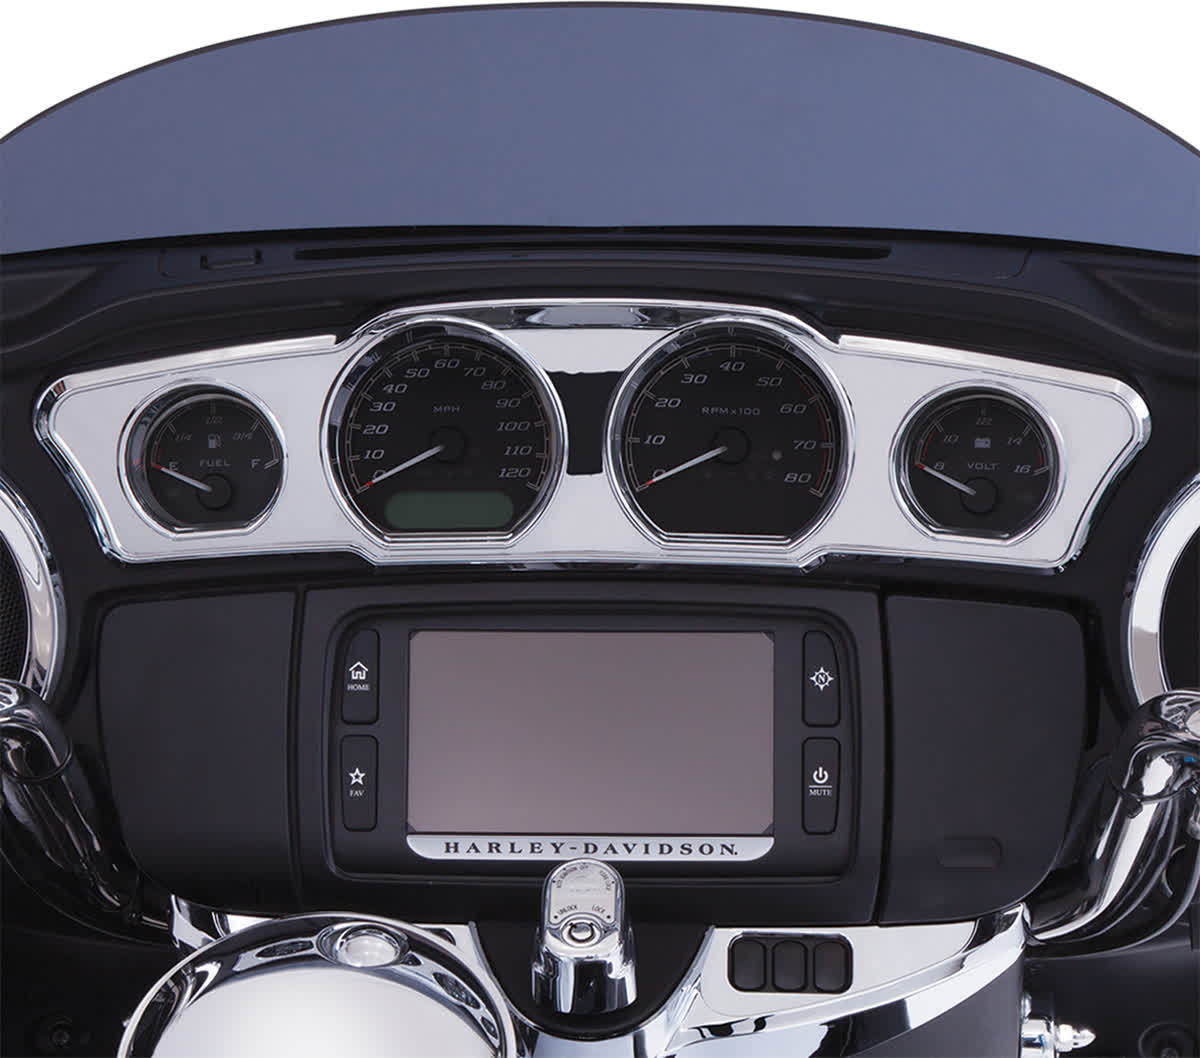 Ciro 42205 Chrome Dash Accent without LEDs for 2014+ FL Models